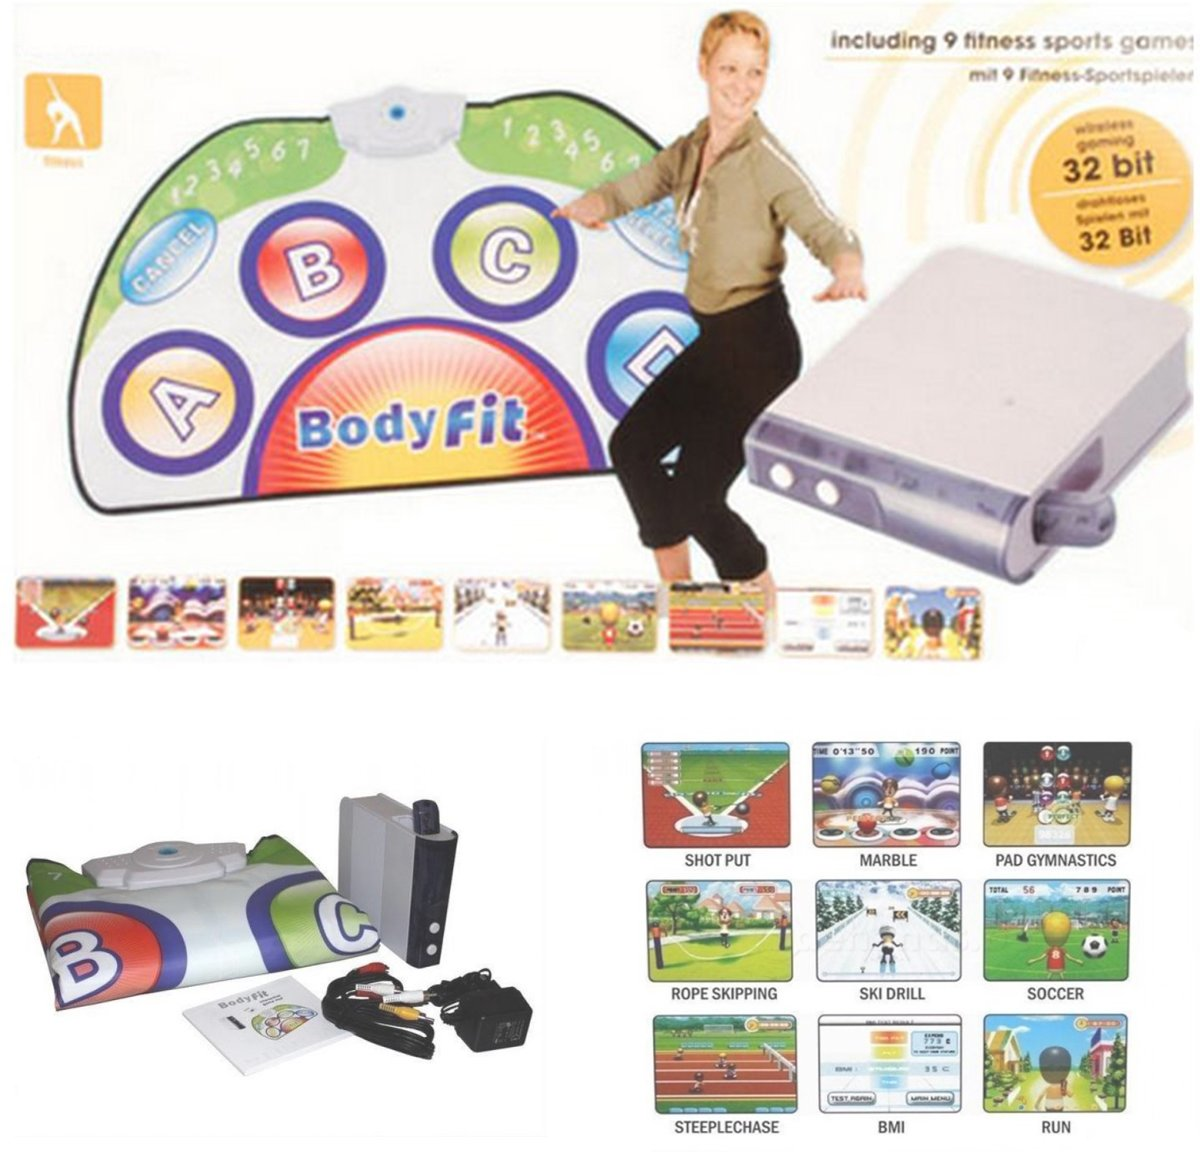 Body fit game set wireless console incl. 9 fitness sport games